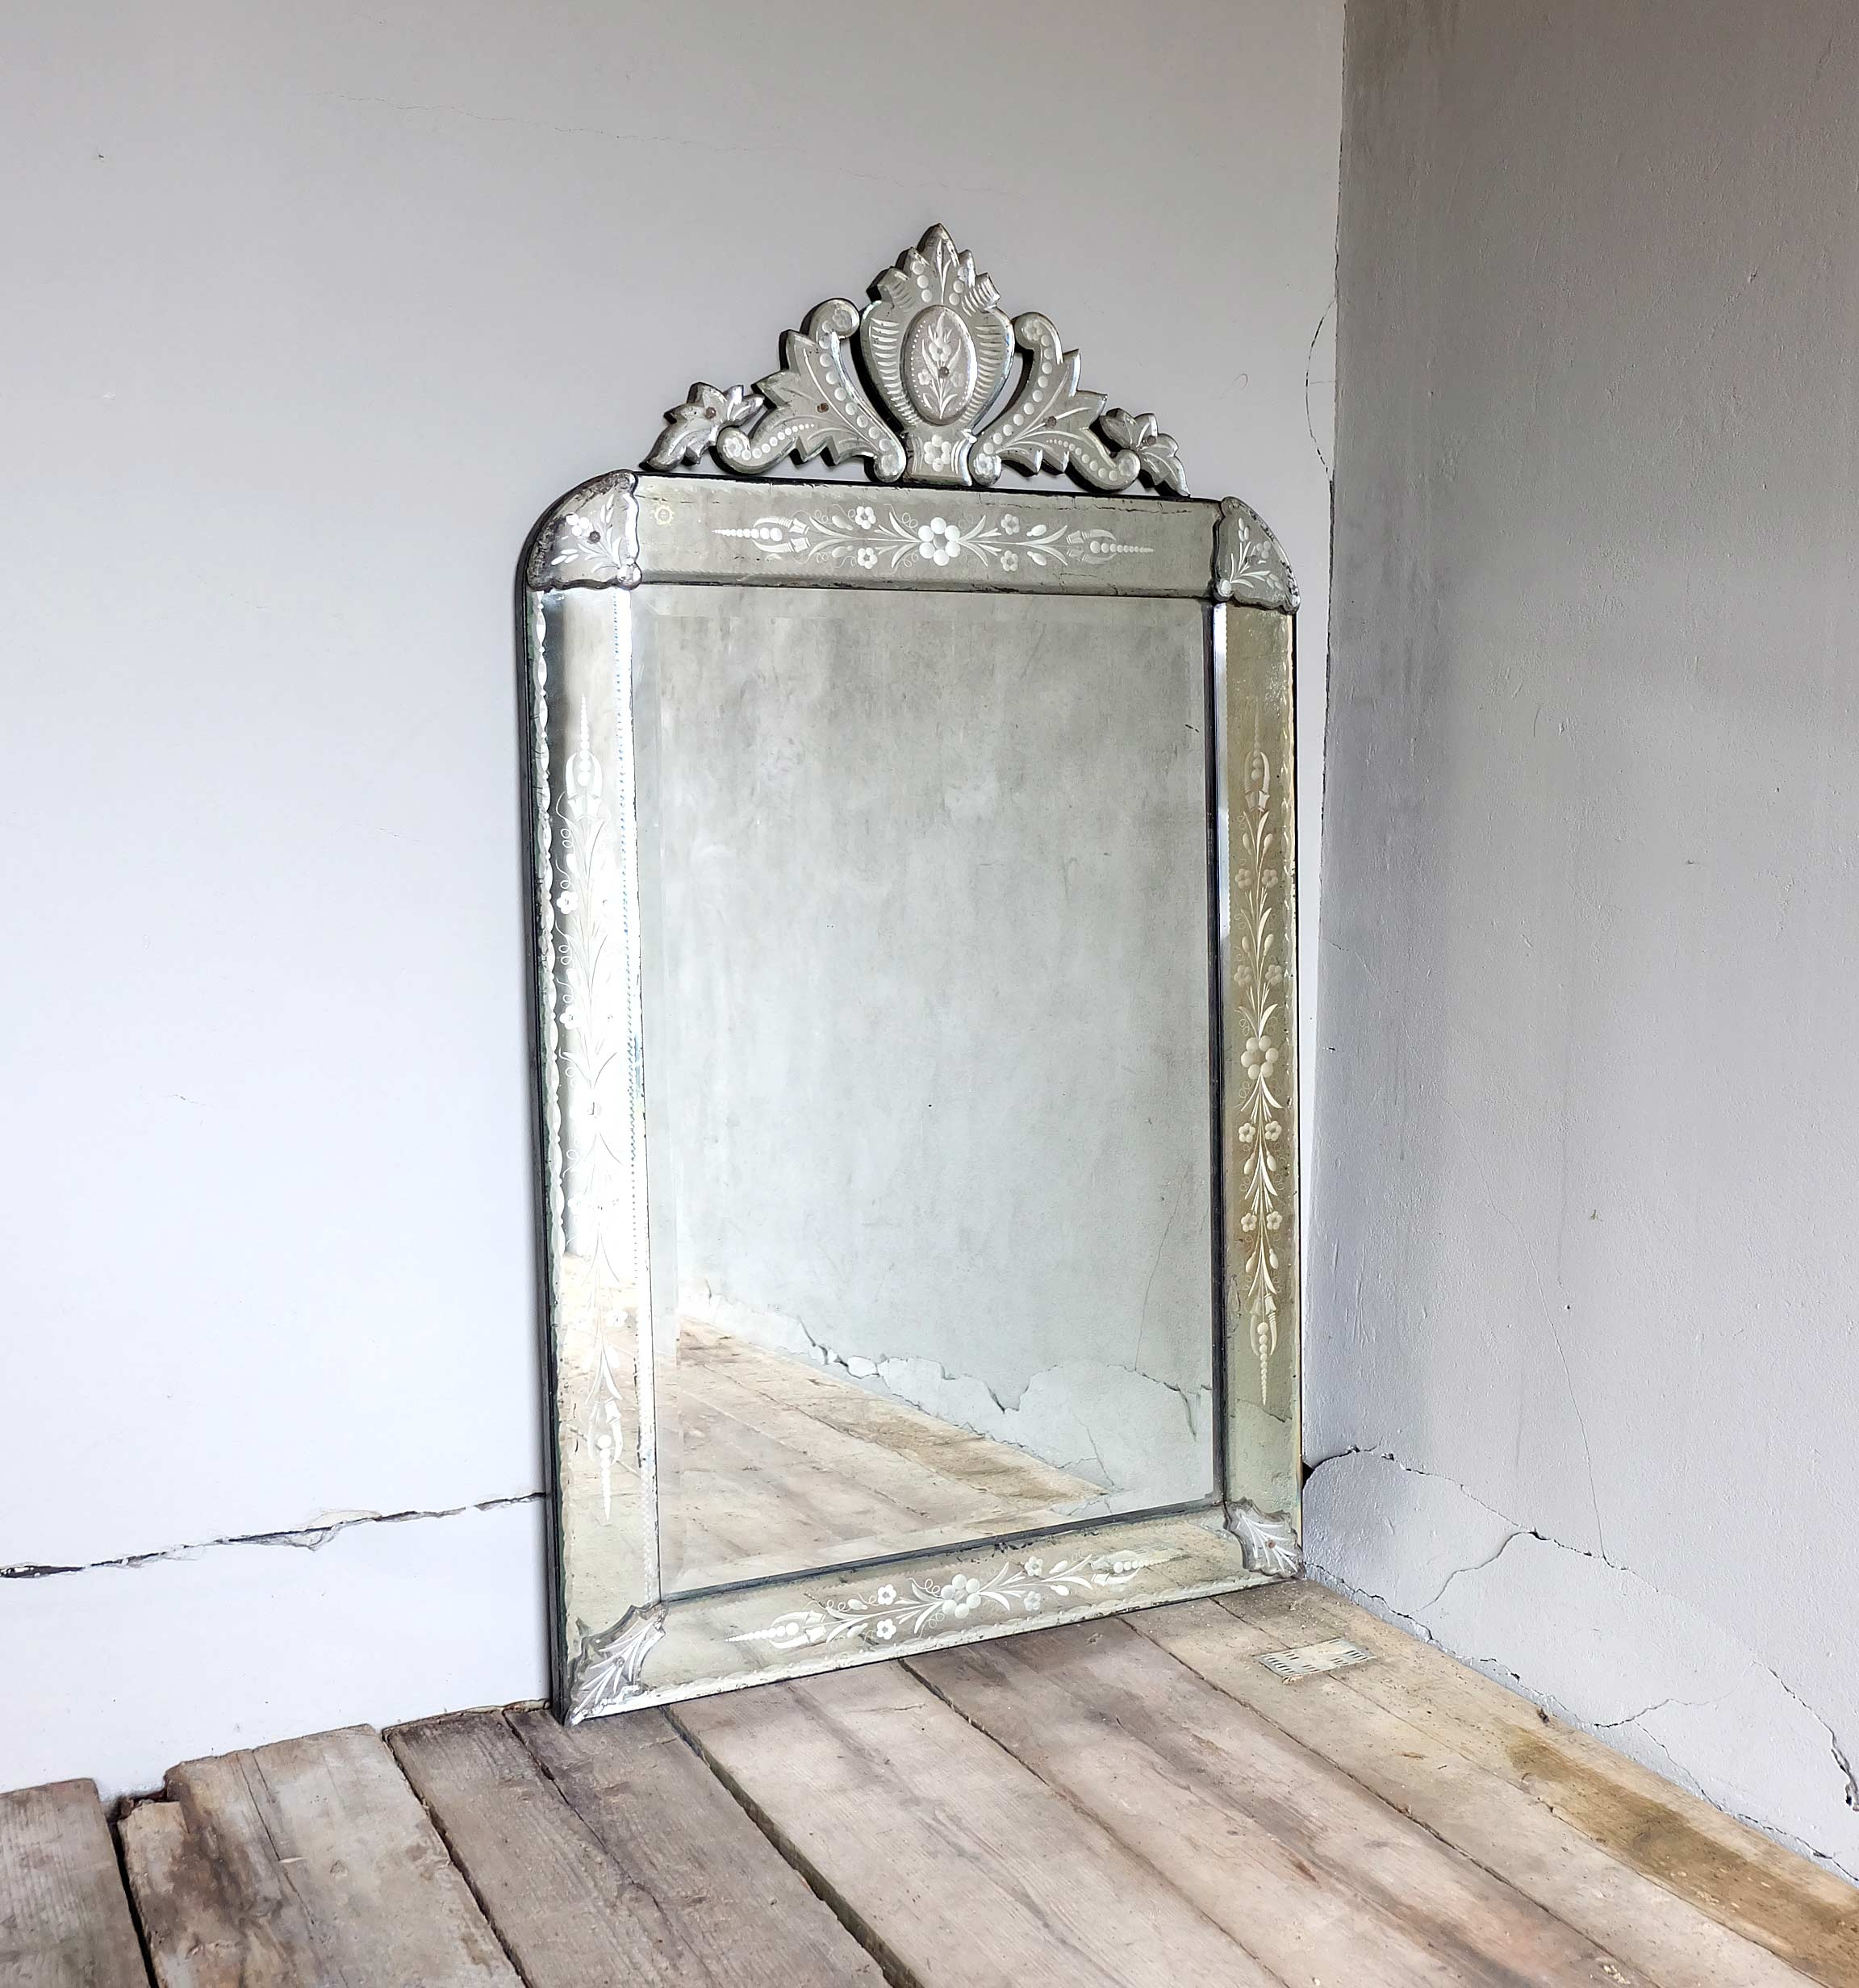 Antique Venetian Mirror Puckhaber Decorative Antiques Regarding Venetian Mirror Antique (Image 5 of 15)